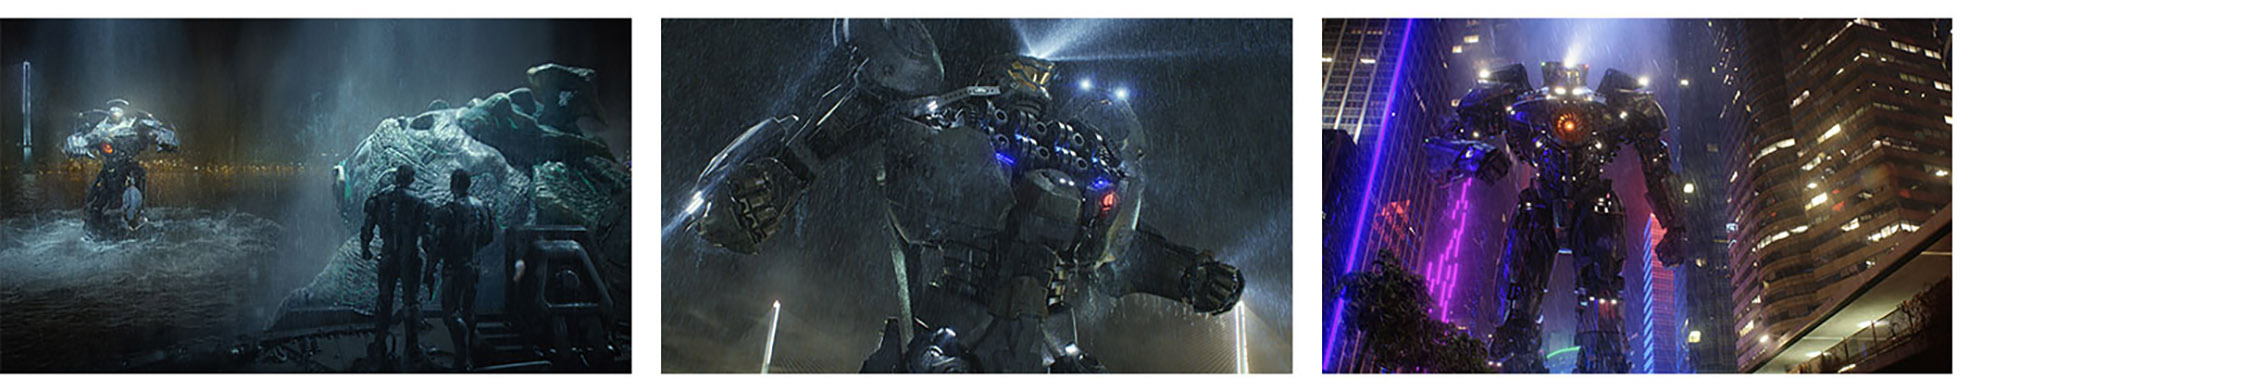 still_pacificrim_4d